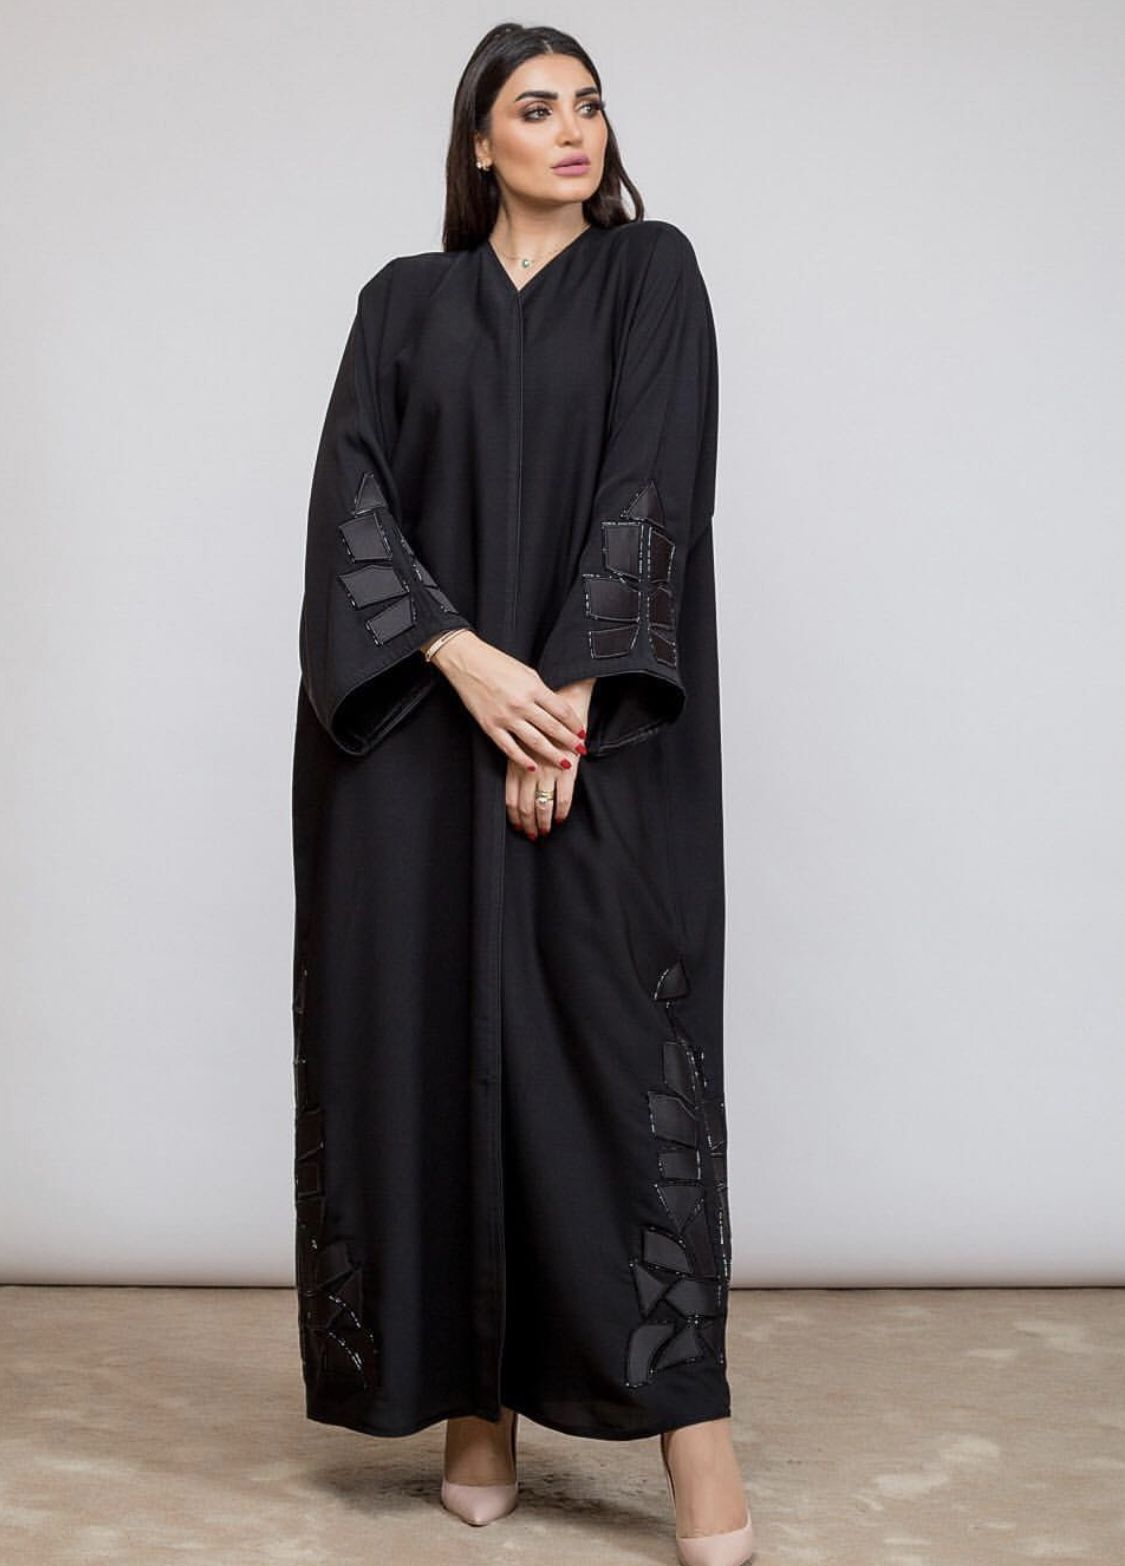 940f8c61d Vintage Abaya | คცคעค in 2019 | Abaya fashion, Burqa designs, Abaya ...